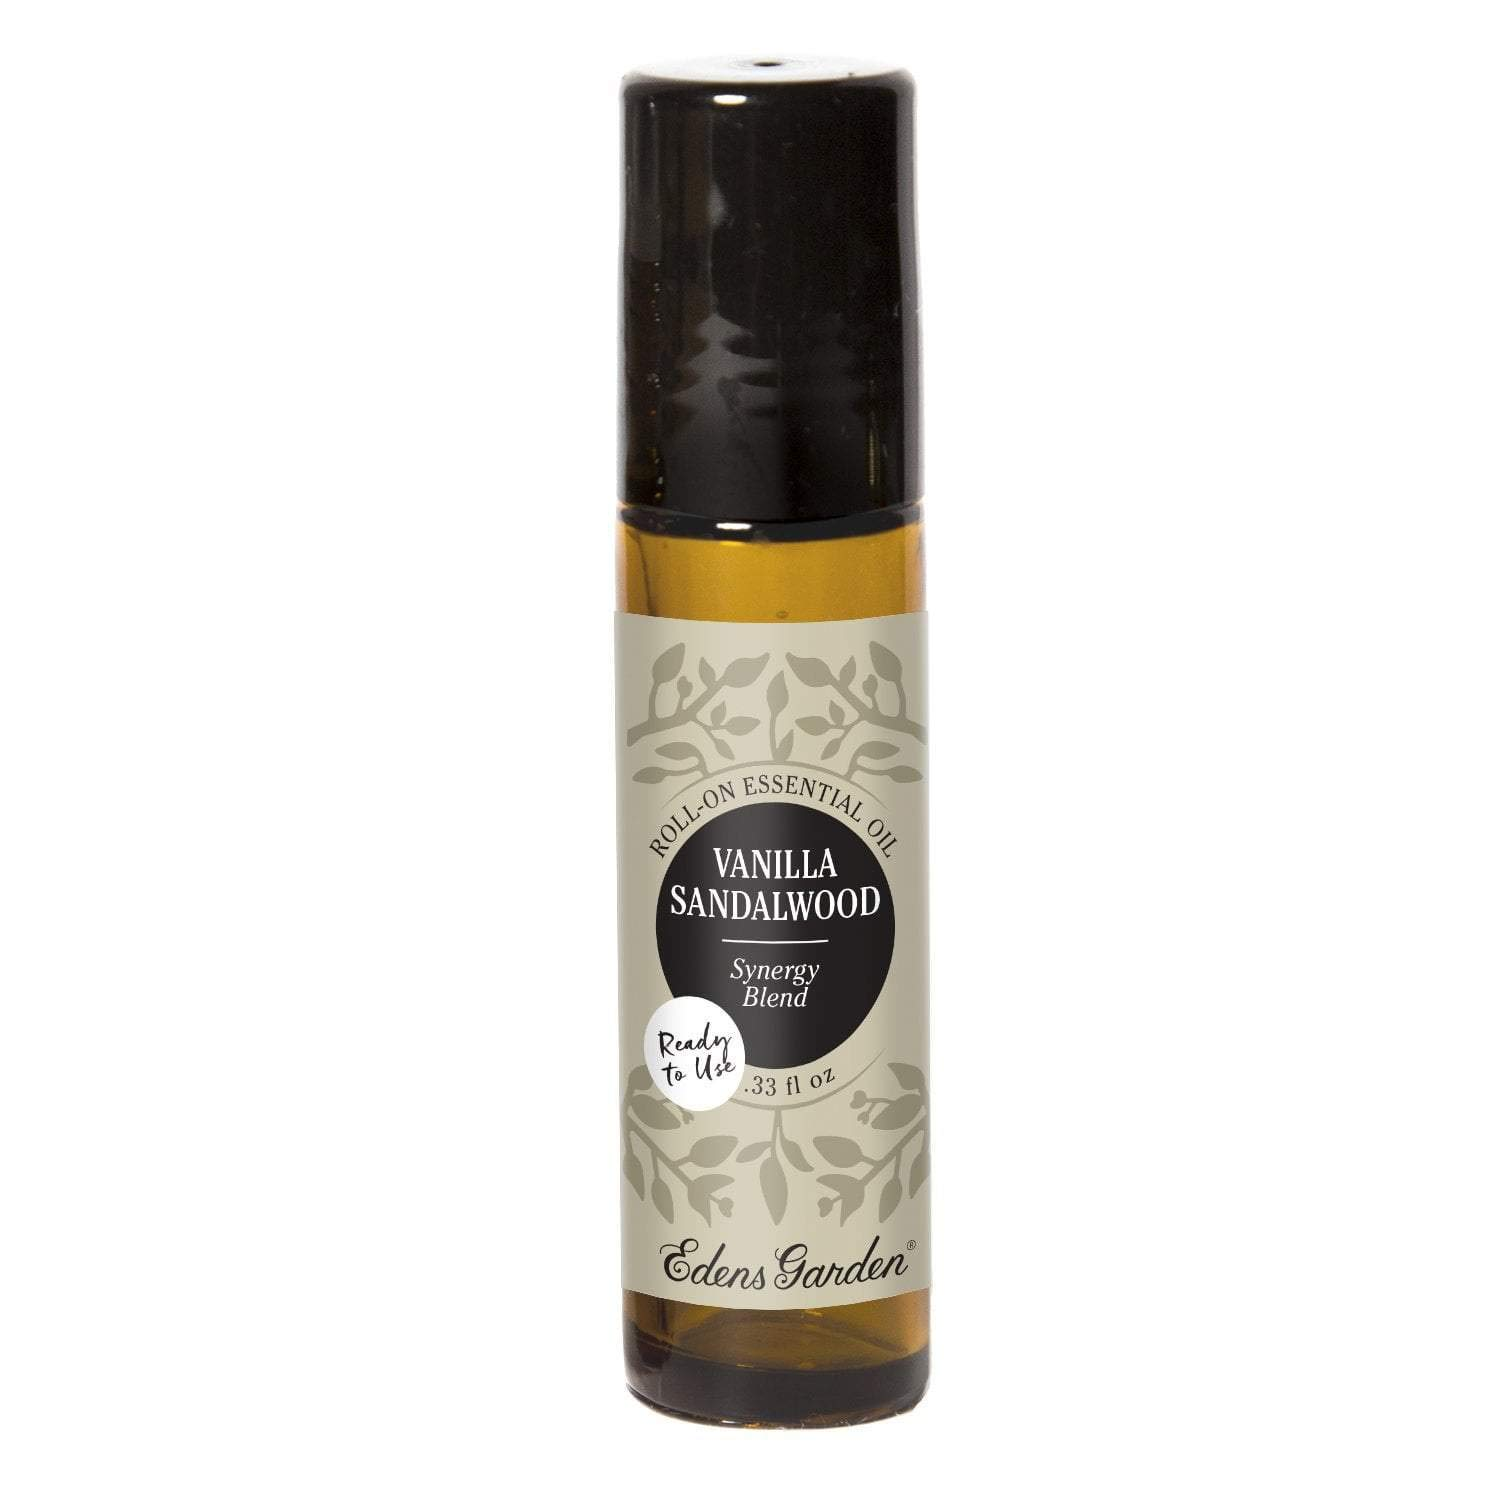 Edens Garden Vanilla Sandalwood Essential Oil Synergy Blend, 100% Pure Therapeutic Grade (Pre-Diluted & Ready To Use- Skin Care & Stress), 10 ml Roll-On